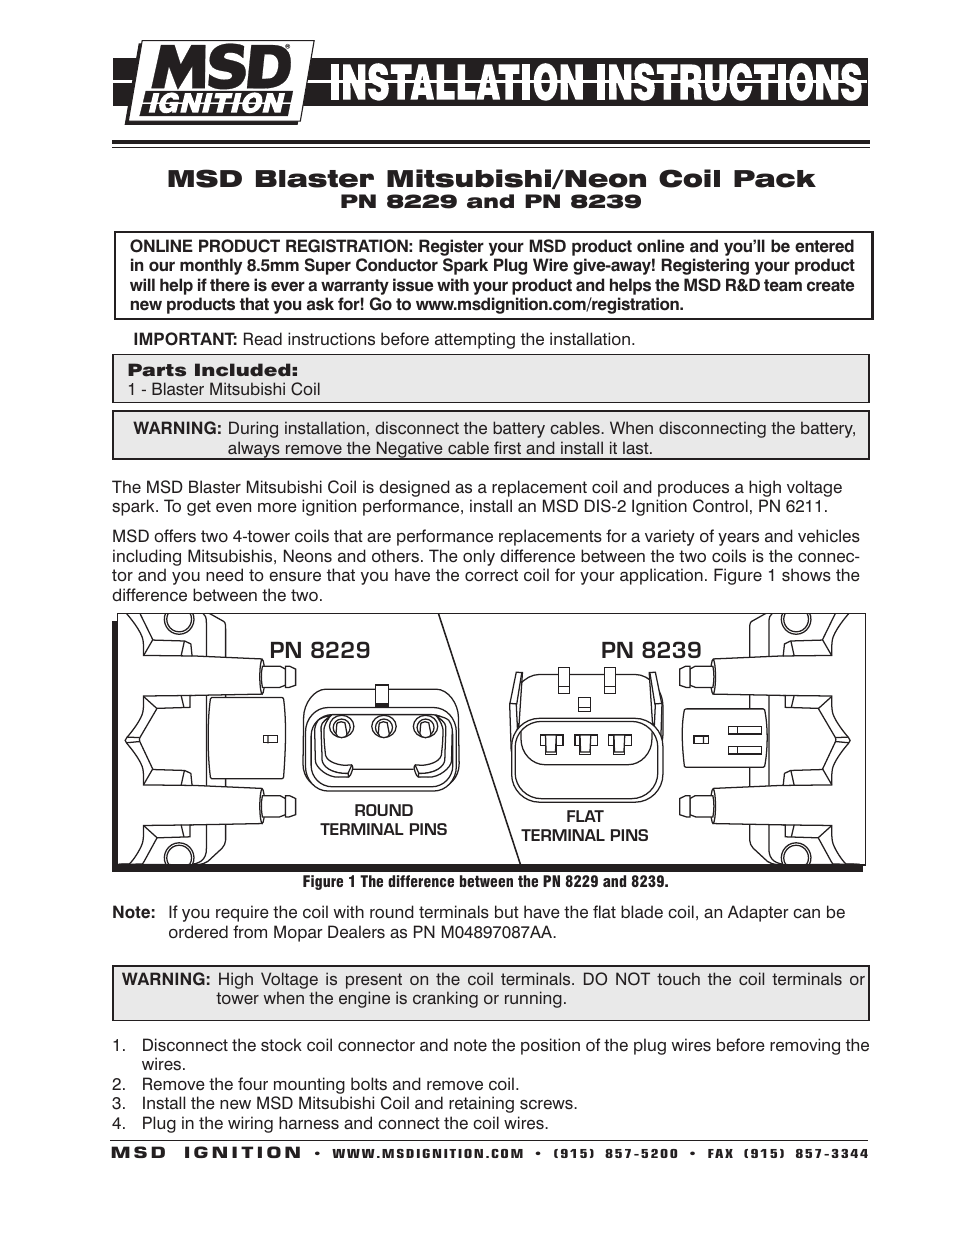 Dodge Coil Connector Wiring Library Terminals Msd 8239 Mitsubishi 1996 On Installation User Manual 2 Pages